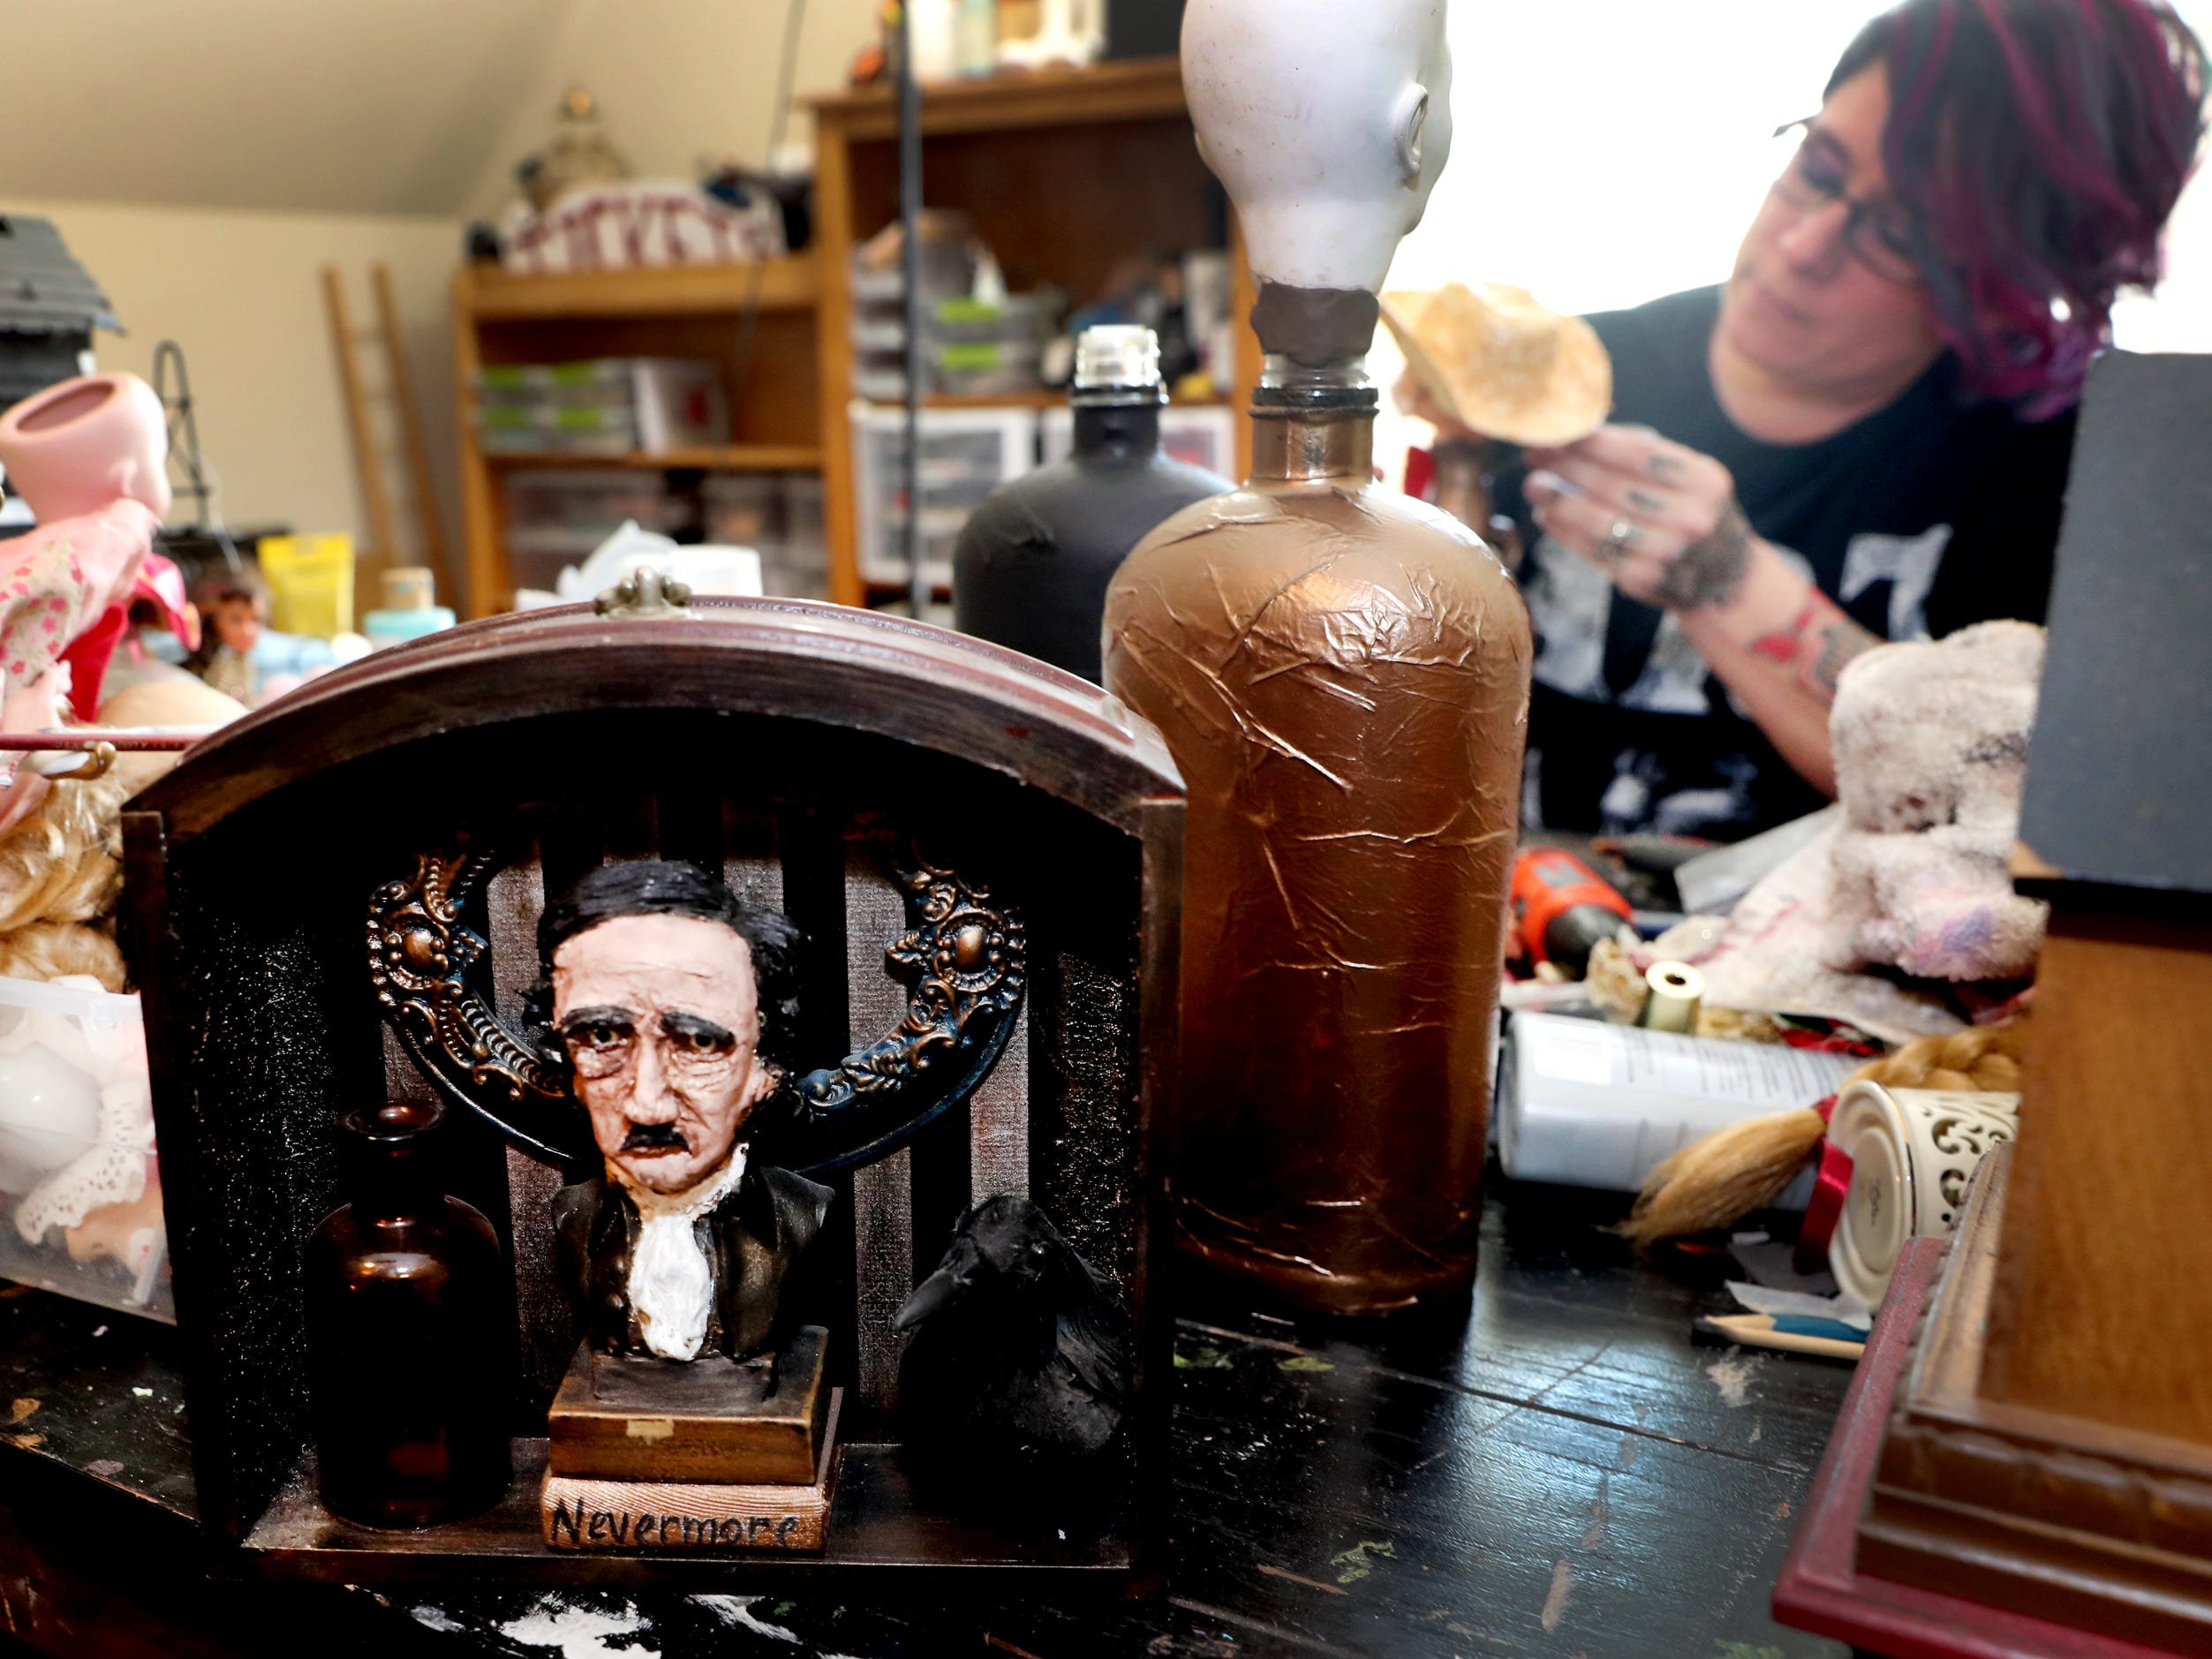 Michelle Sweatt's 3-D piece featuring Edgar Allan Poe can be seen in the foreground as she works on a new piece in the background in her home studio on Tuesday April 16, 2019.